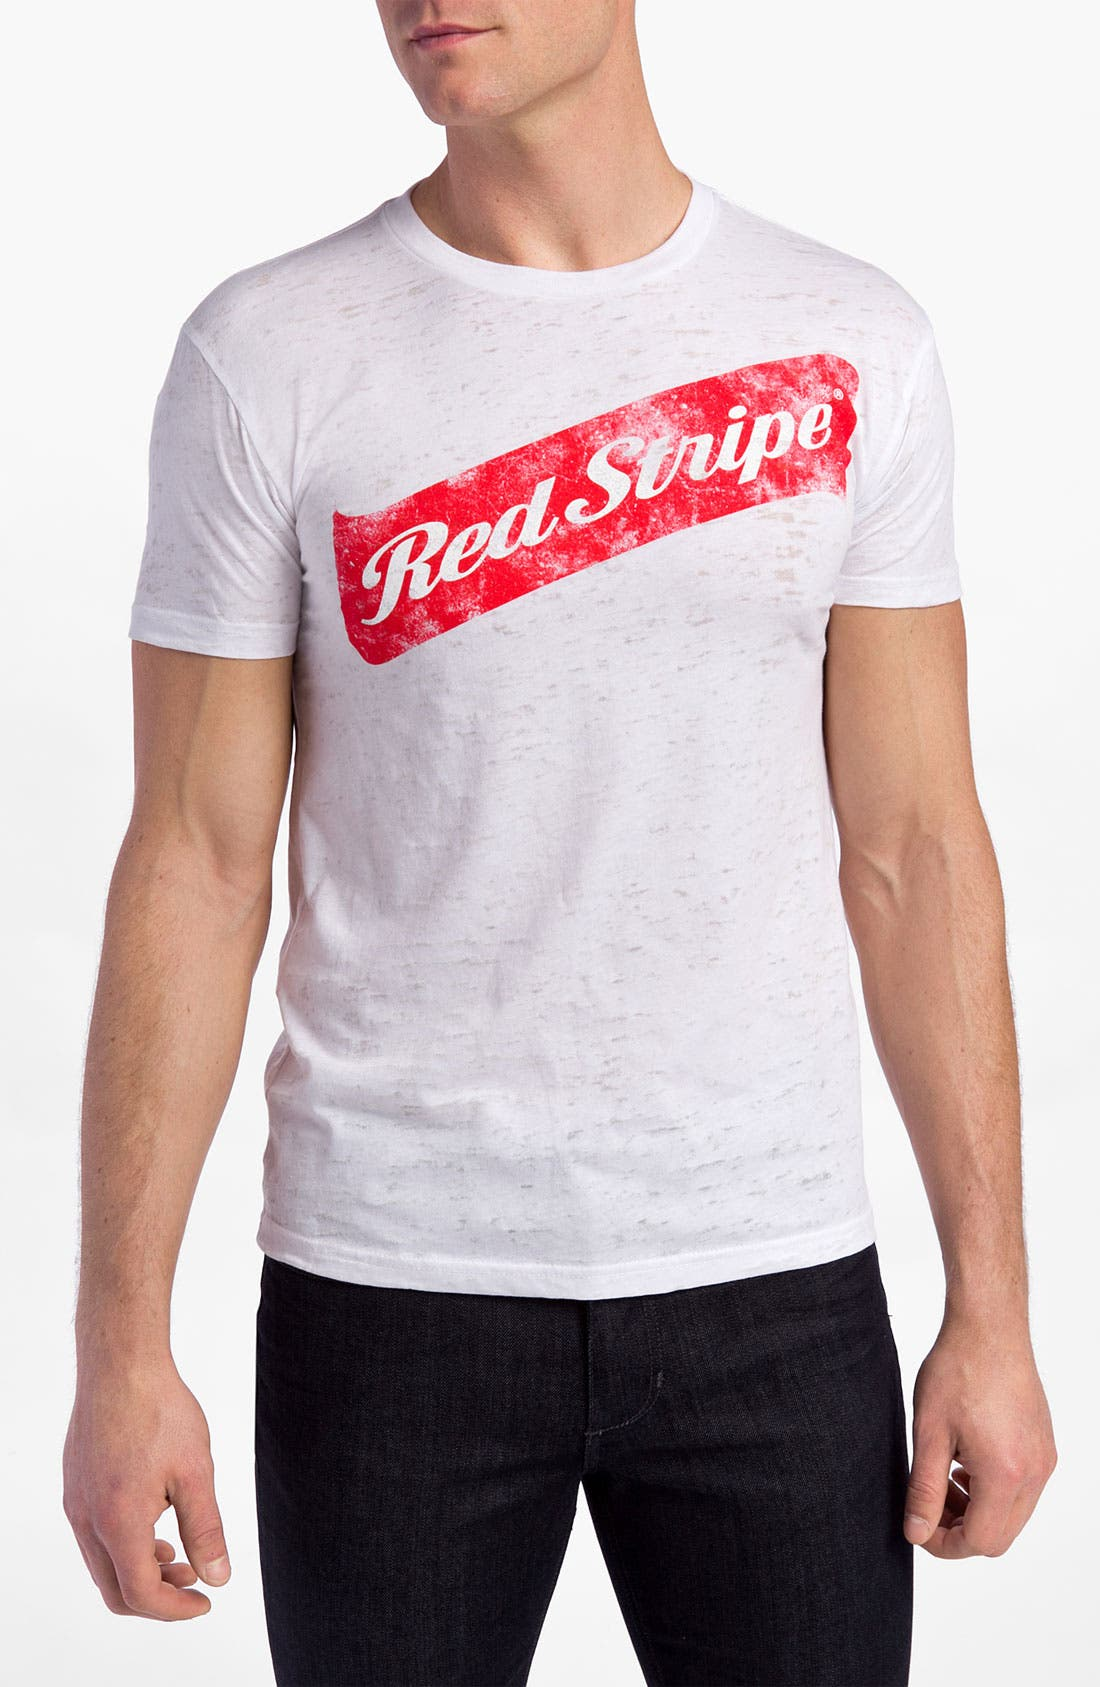 Alternate Image 1 Selected - Free Authority 'Red Stripe' T-Shirt